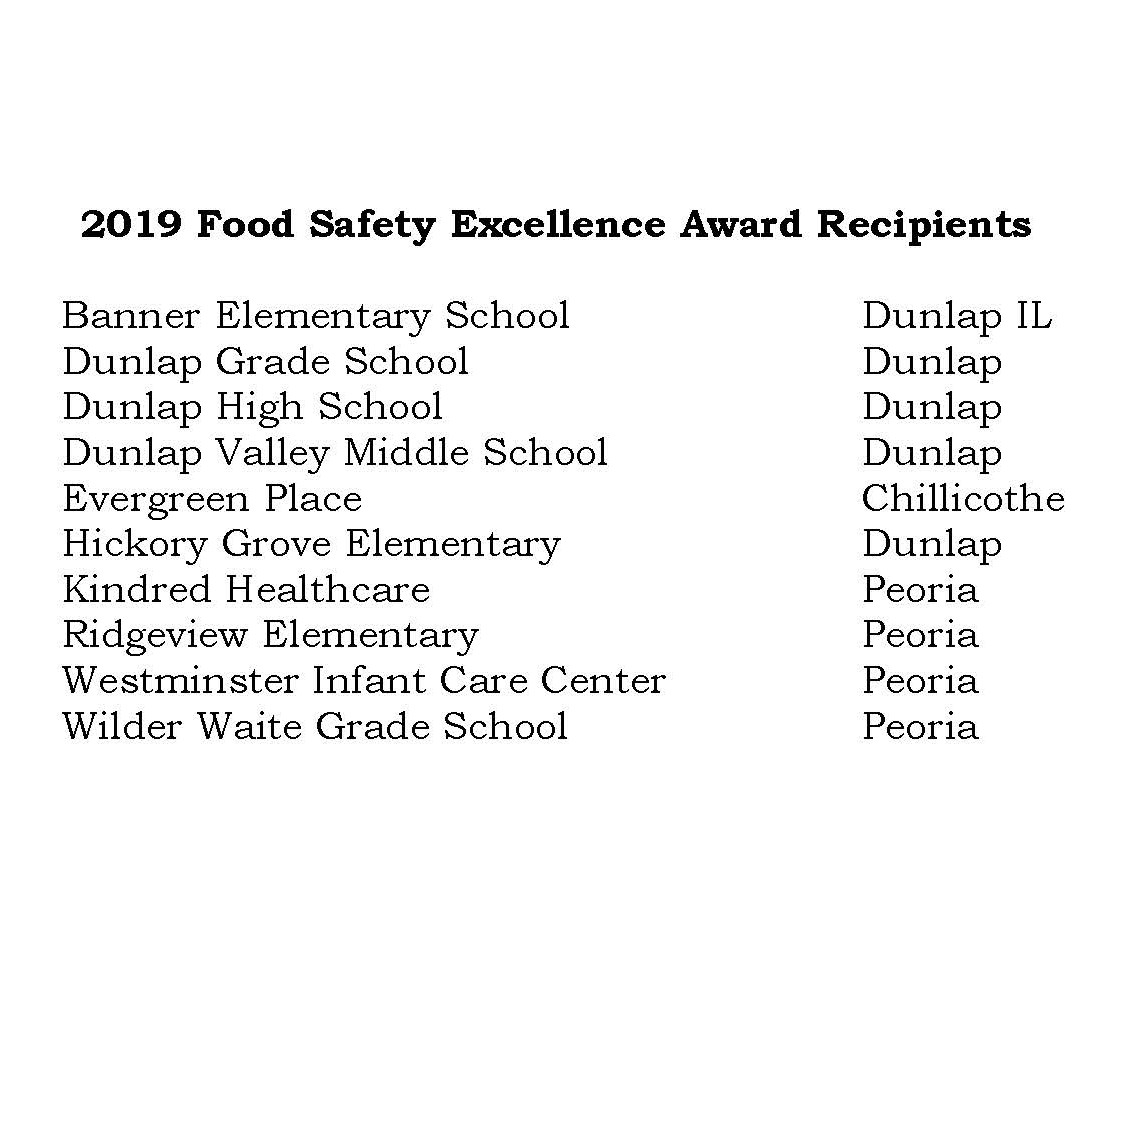 2019 Food Safety Excellence Award Winners  22